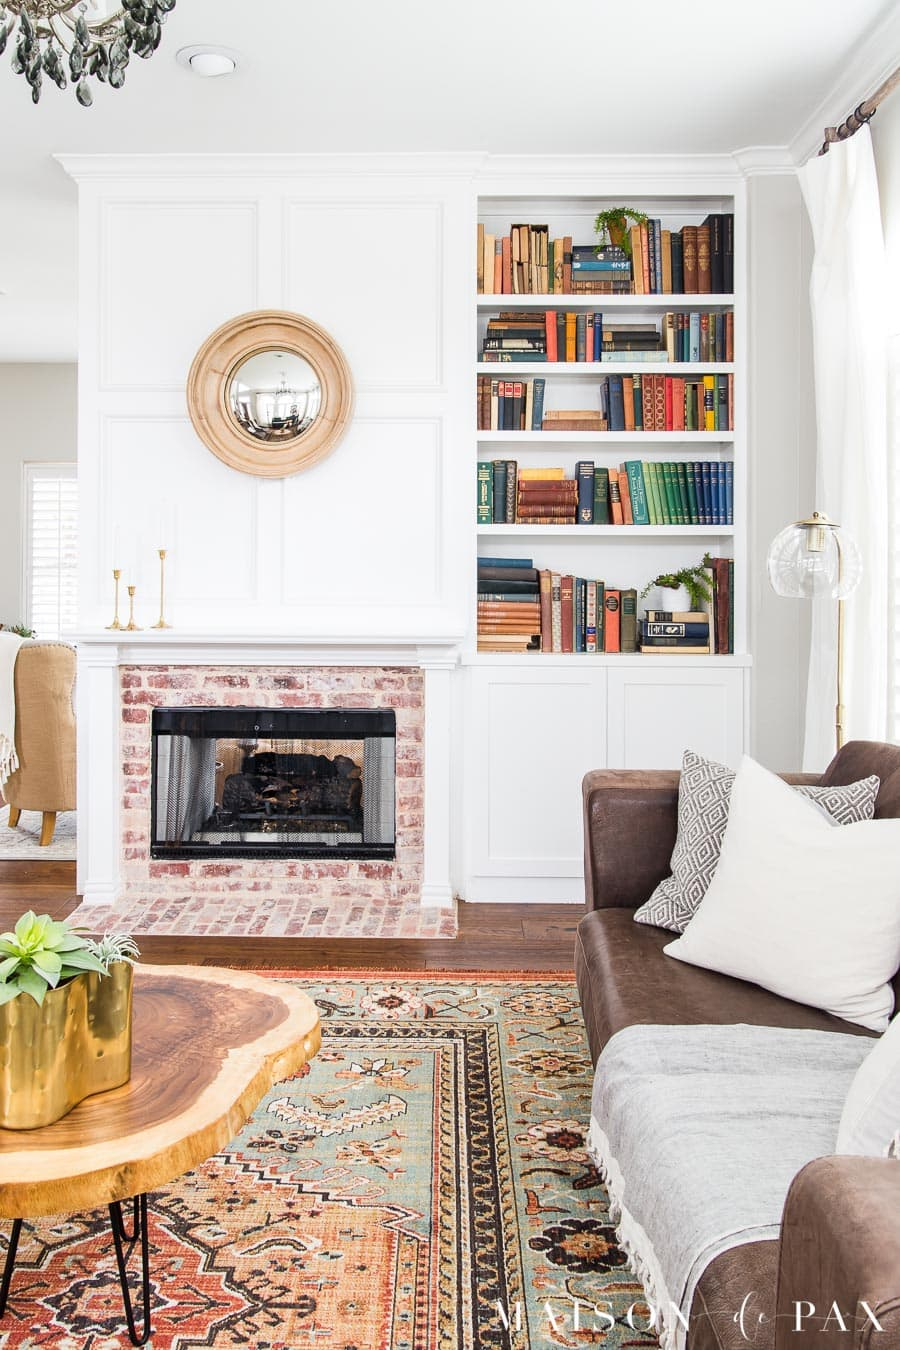 living room fireplace and bookcase with antique books | Maison de Pax